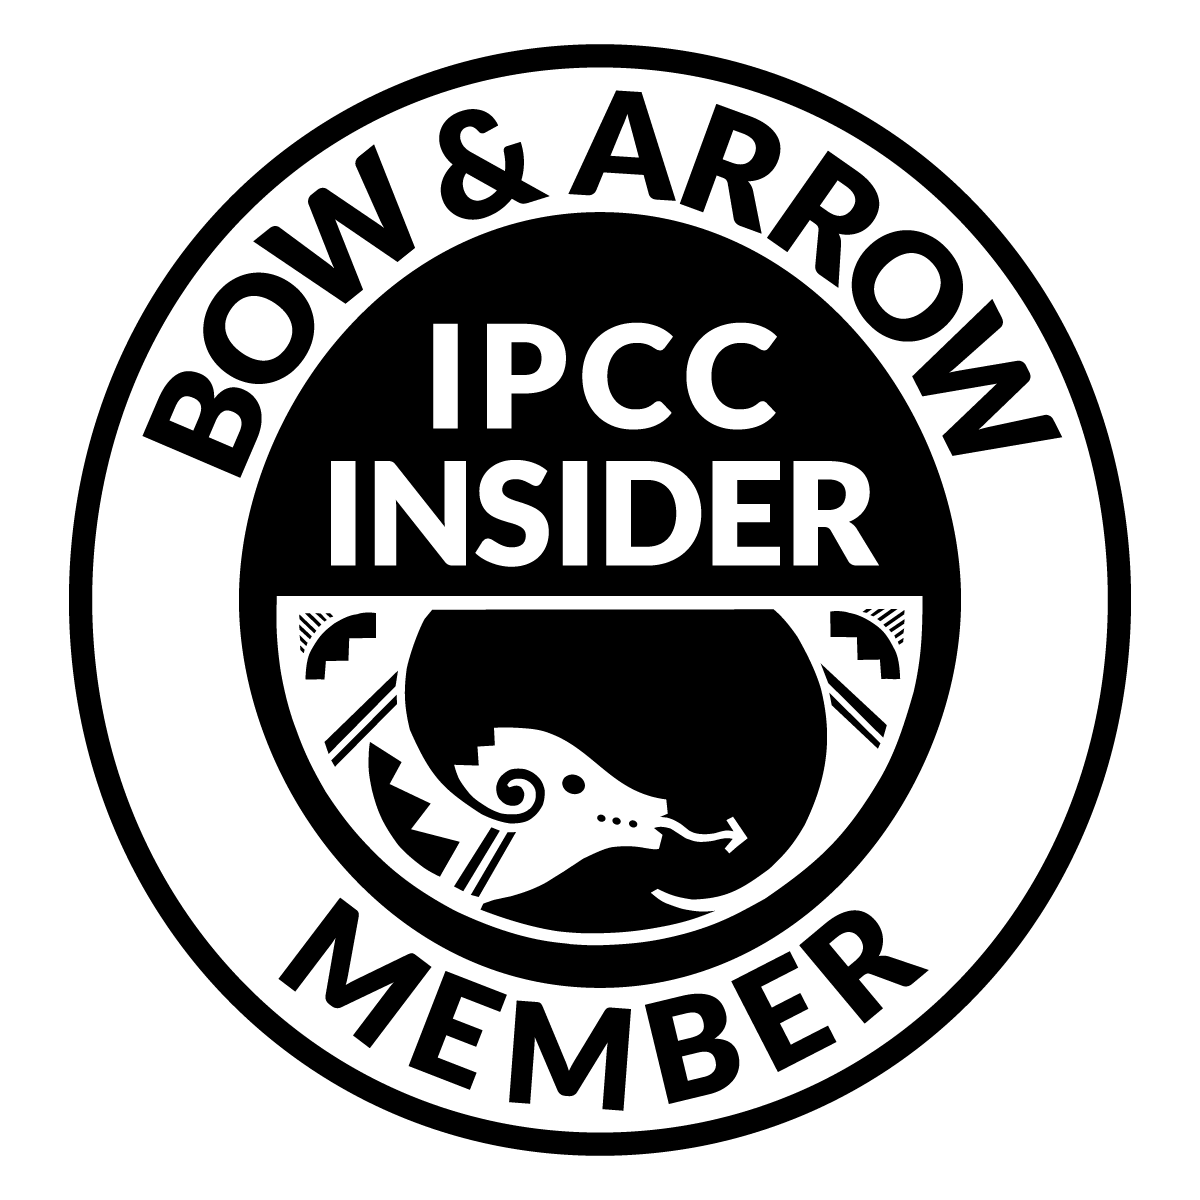 Bow and Arrow Indian Pueblo Cultural Center Membership Level